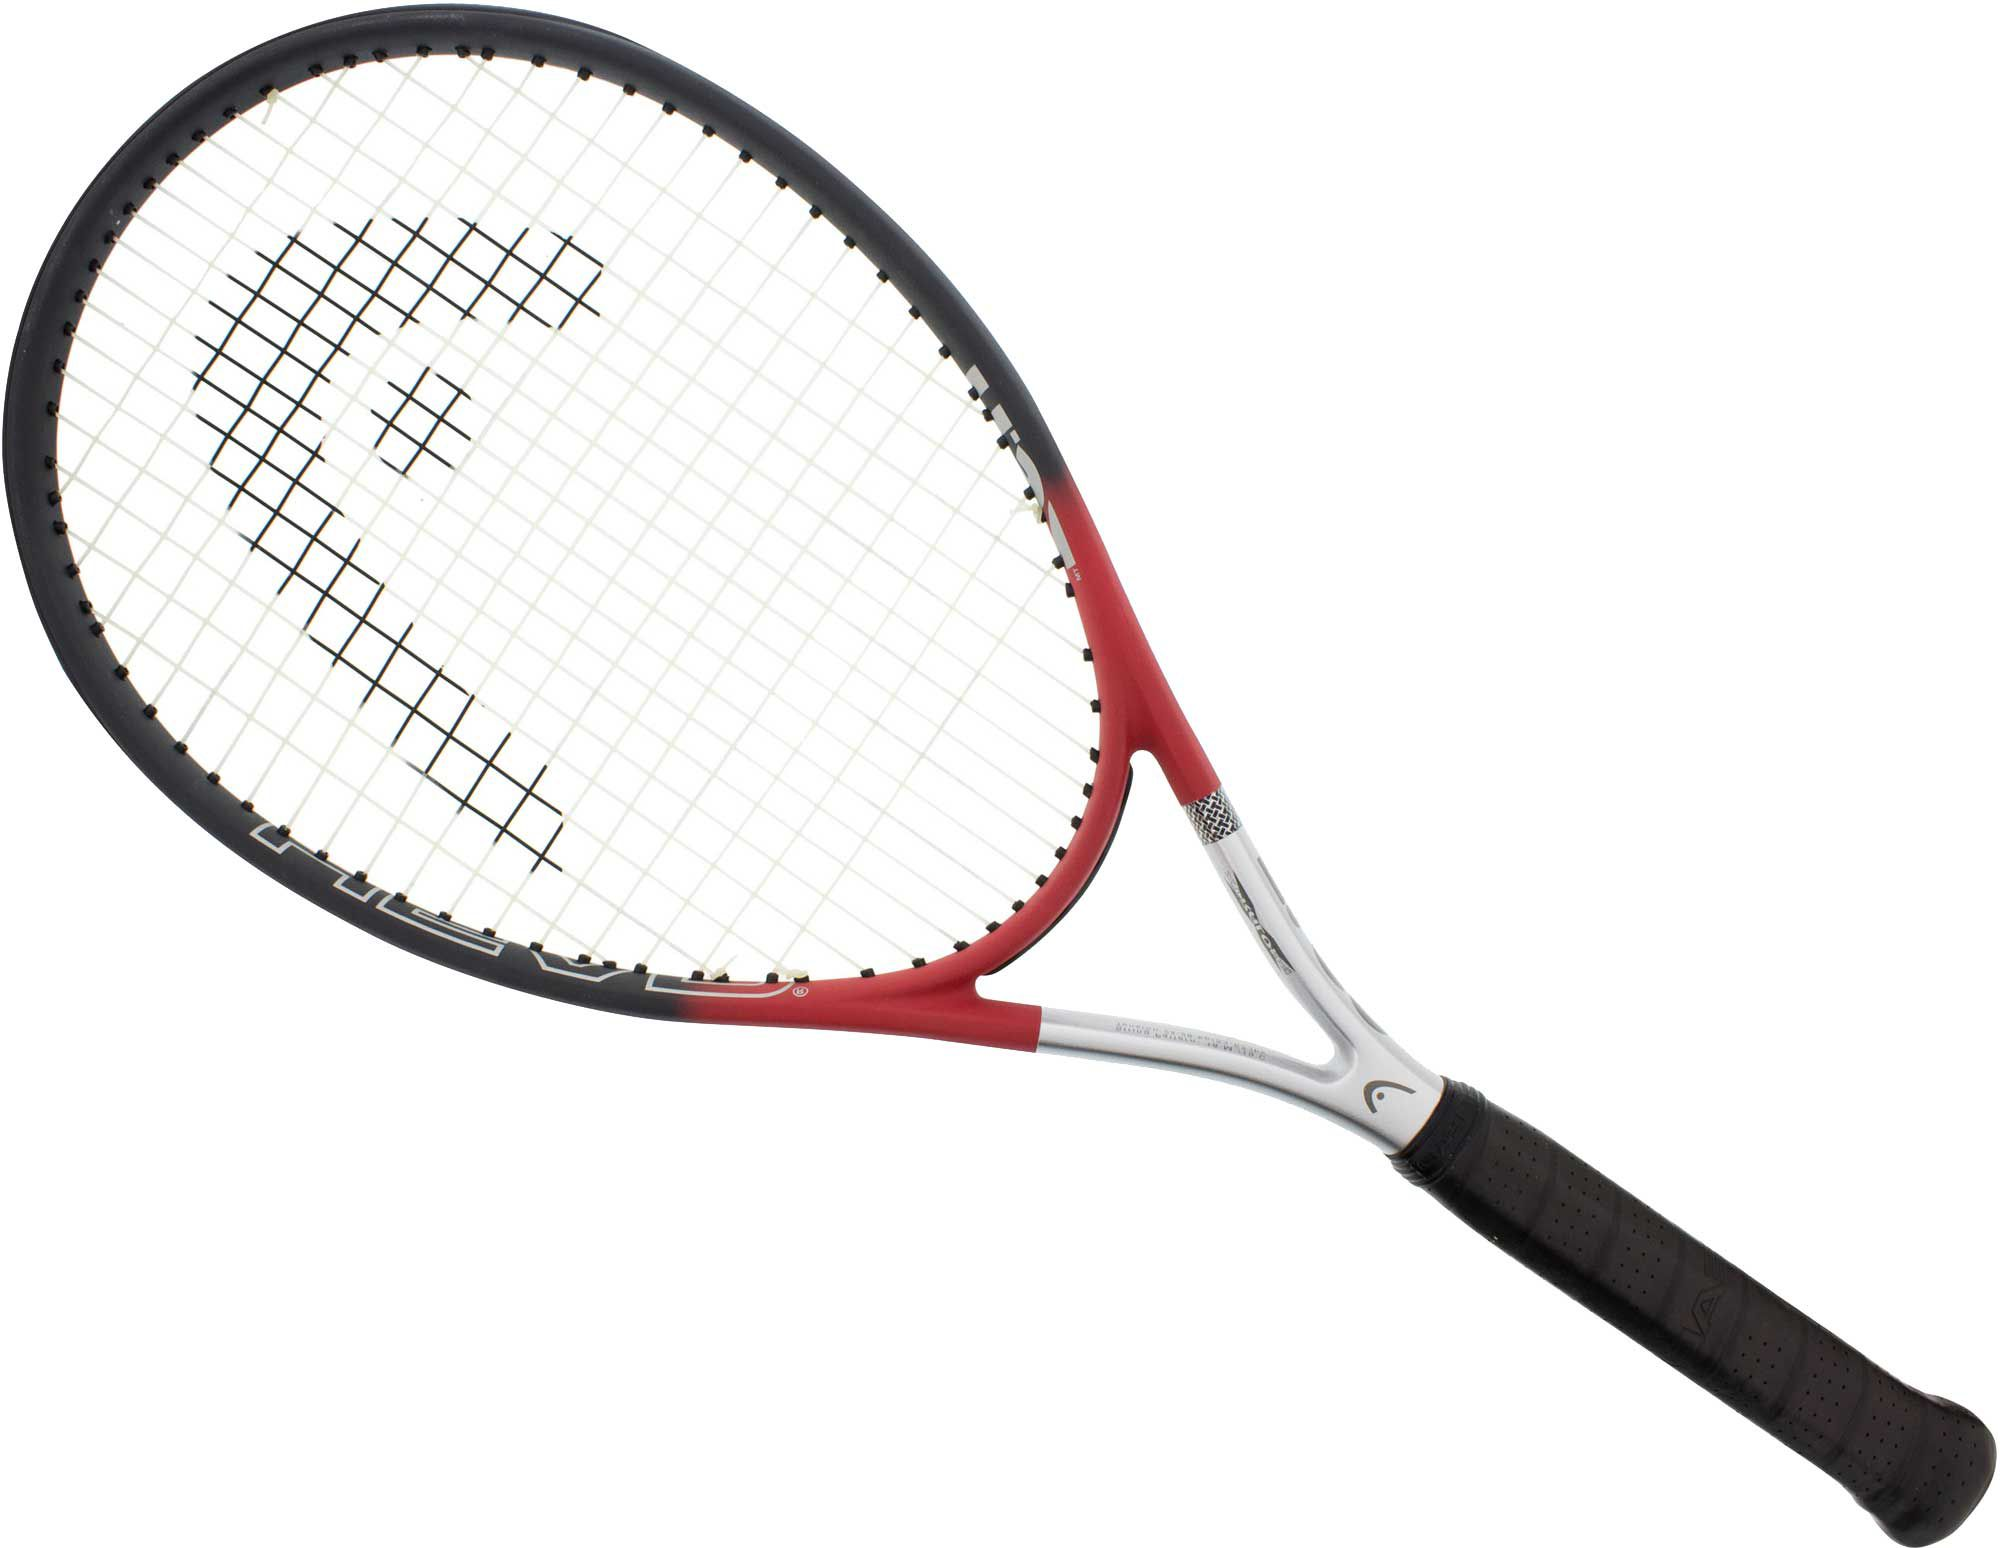 marketing and rackets Market research for tennis racquets market and target market, and drawing conclusions from the analyses to develop a marketing plan secondary data for market research sports-related racquet-industry publications and reports.